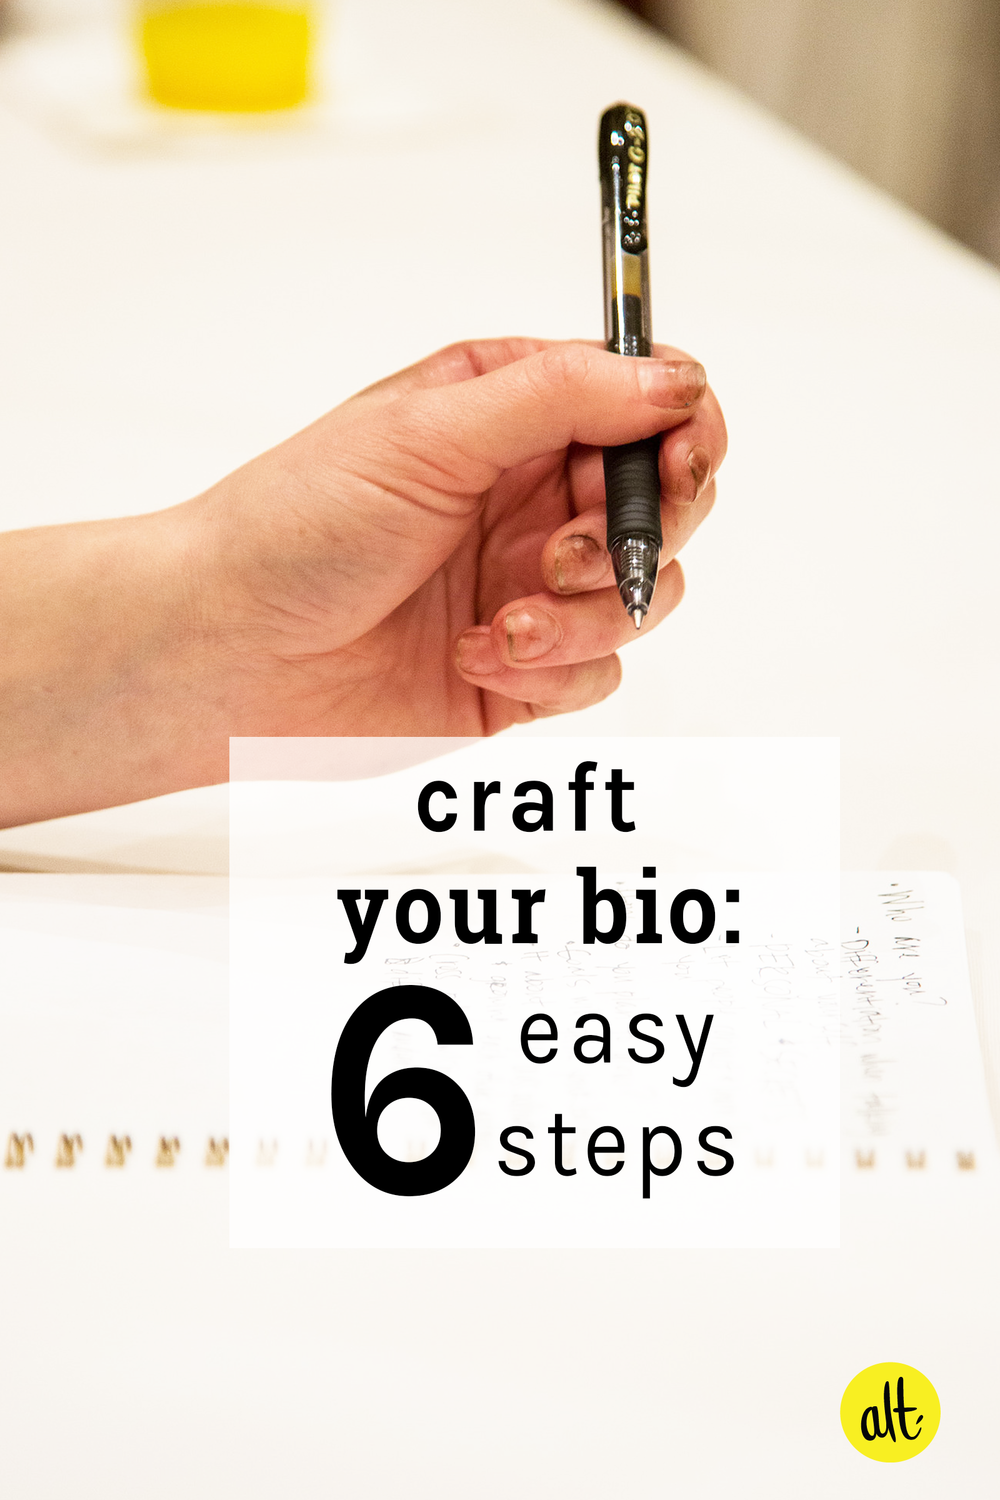 Is your bio getting a little stale? Did you know you should be updating it about once a year? Follow this tip and five others to craft a great bio that represents you well.